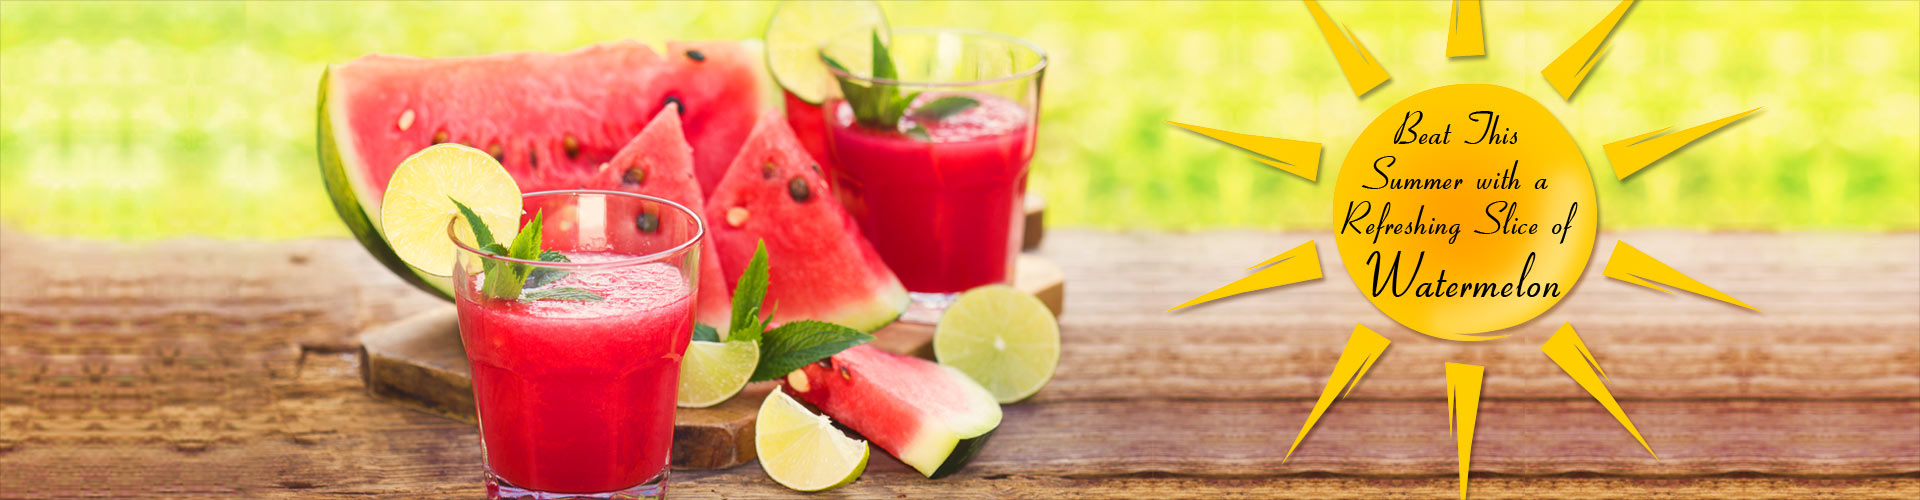 Top 10 Summer Foods to Beat the Heat - Slide Show